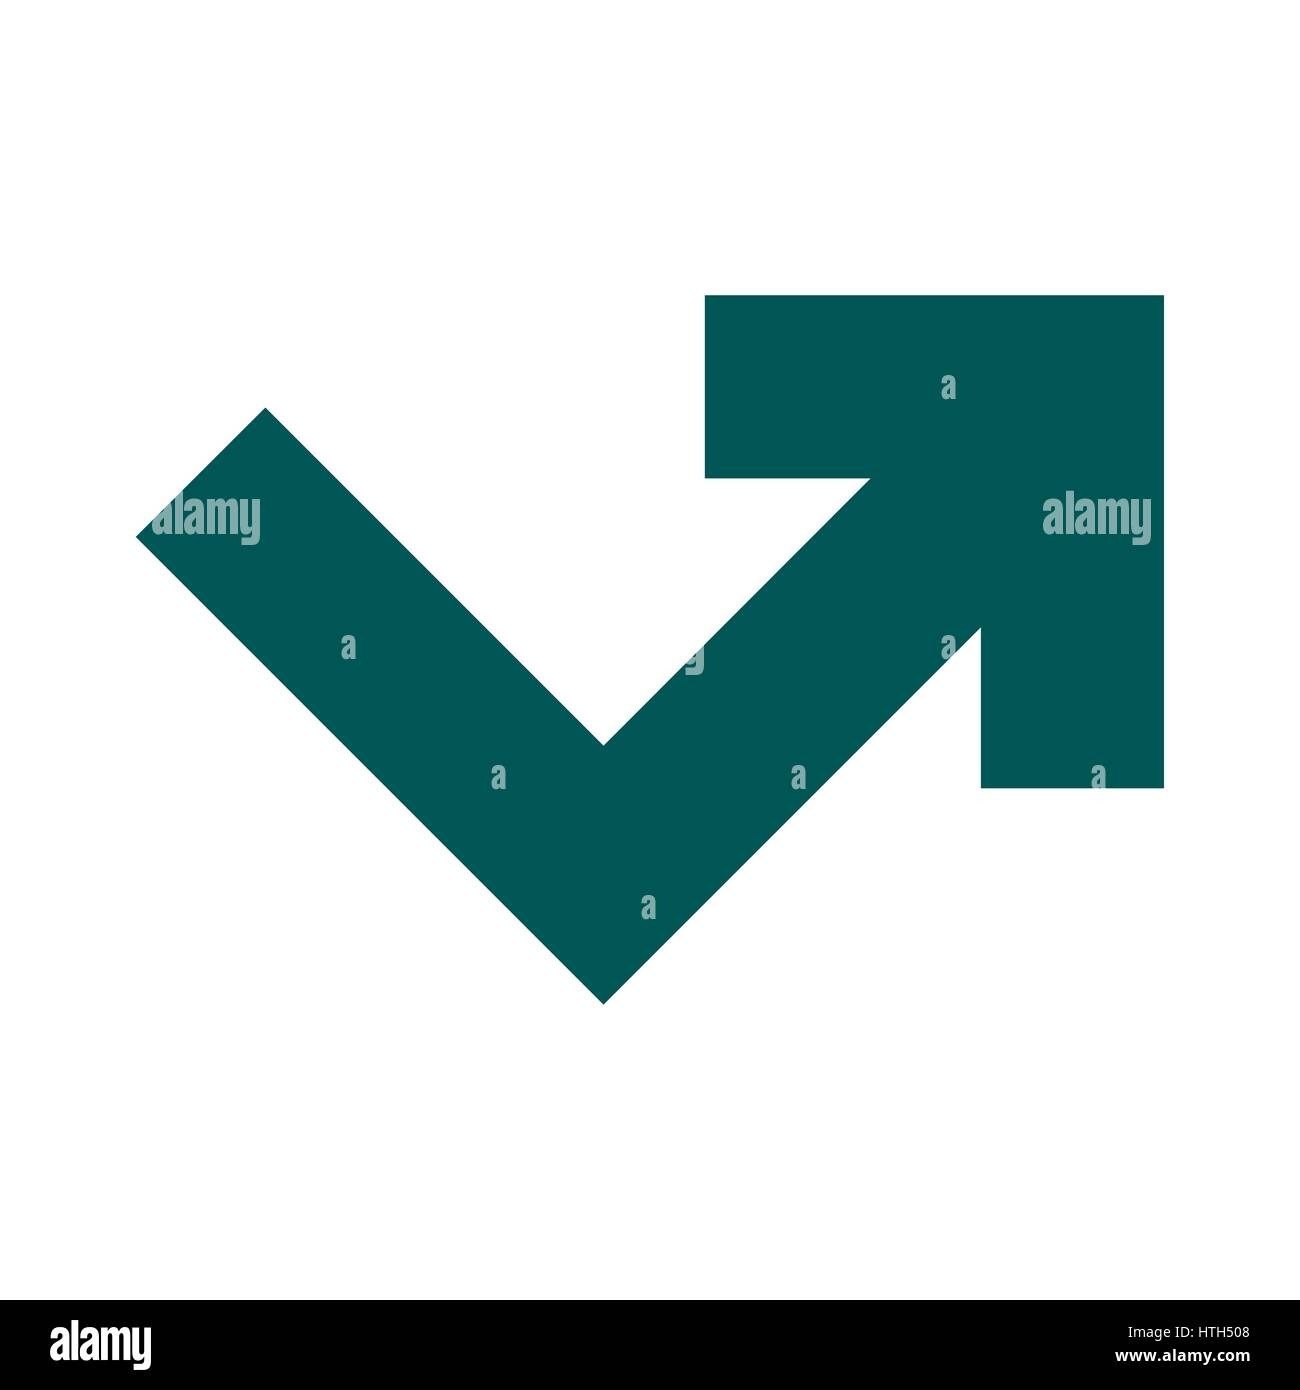 Right Angle Stock Vector Images - Alamy